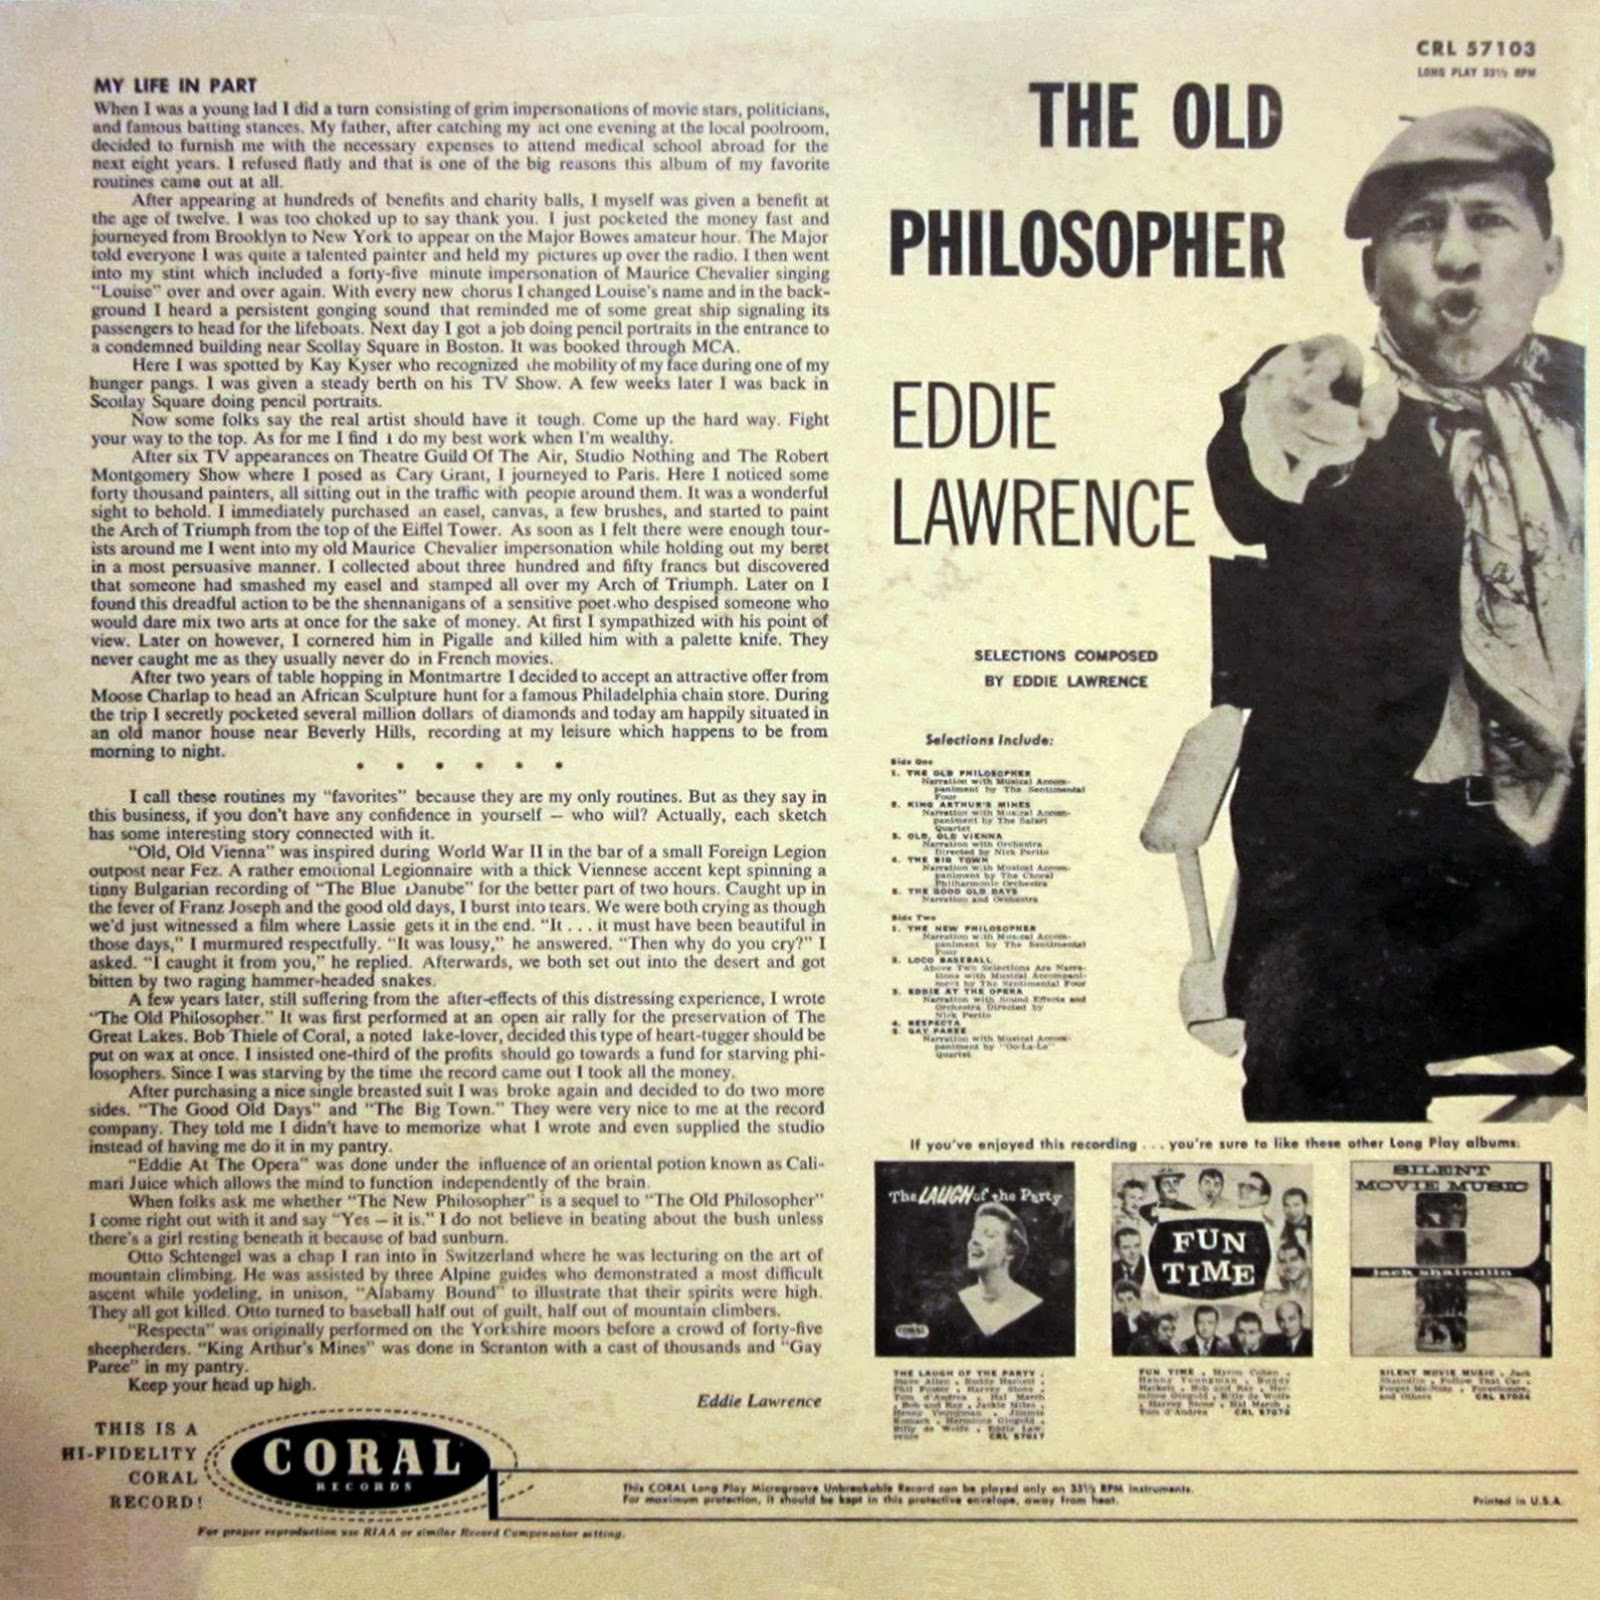 Eddie Lawrence | Discography & Songs | Discogs